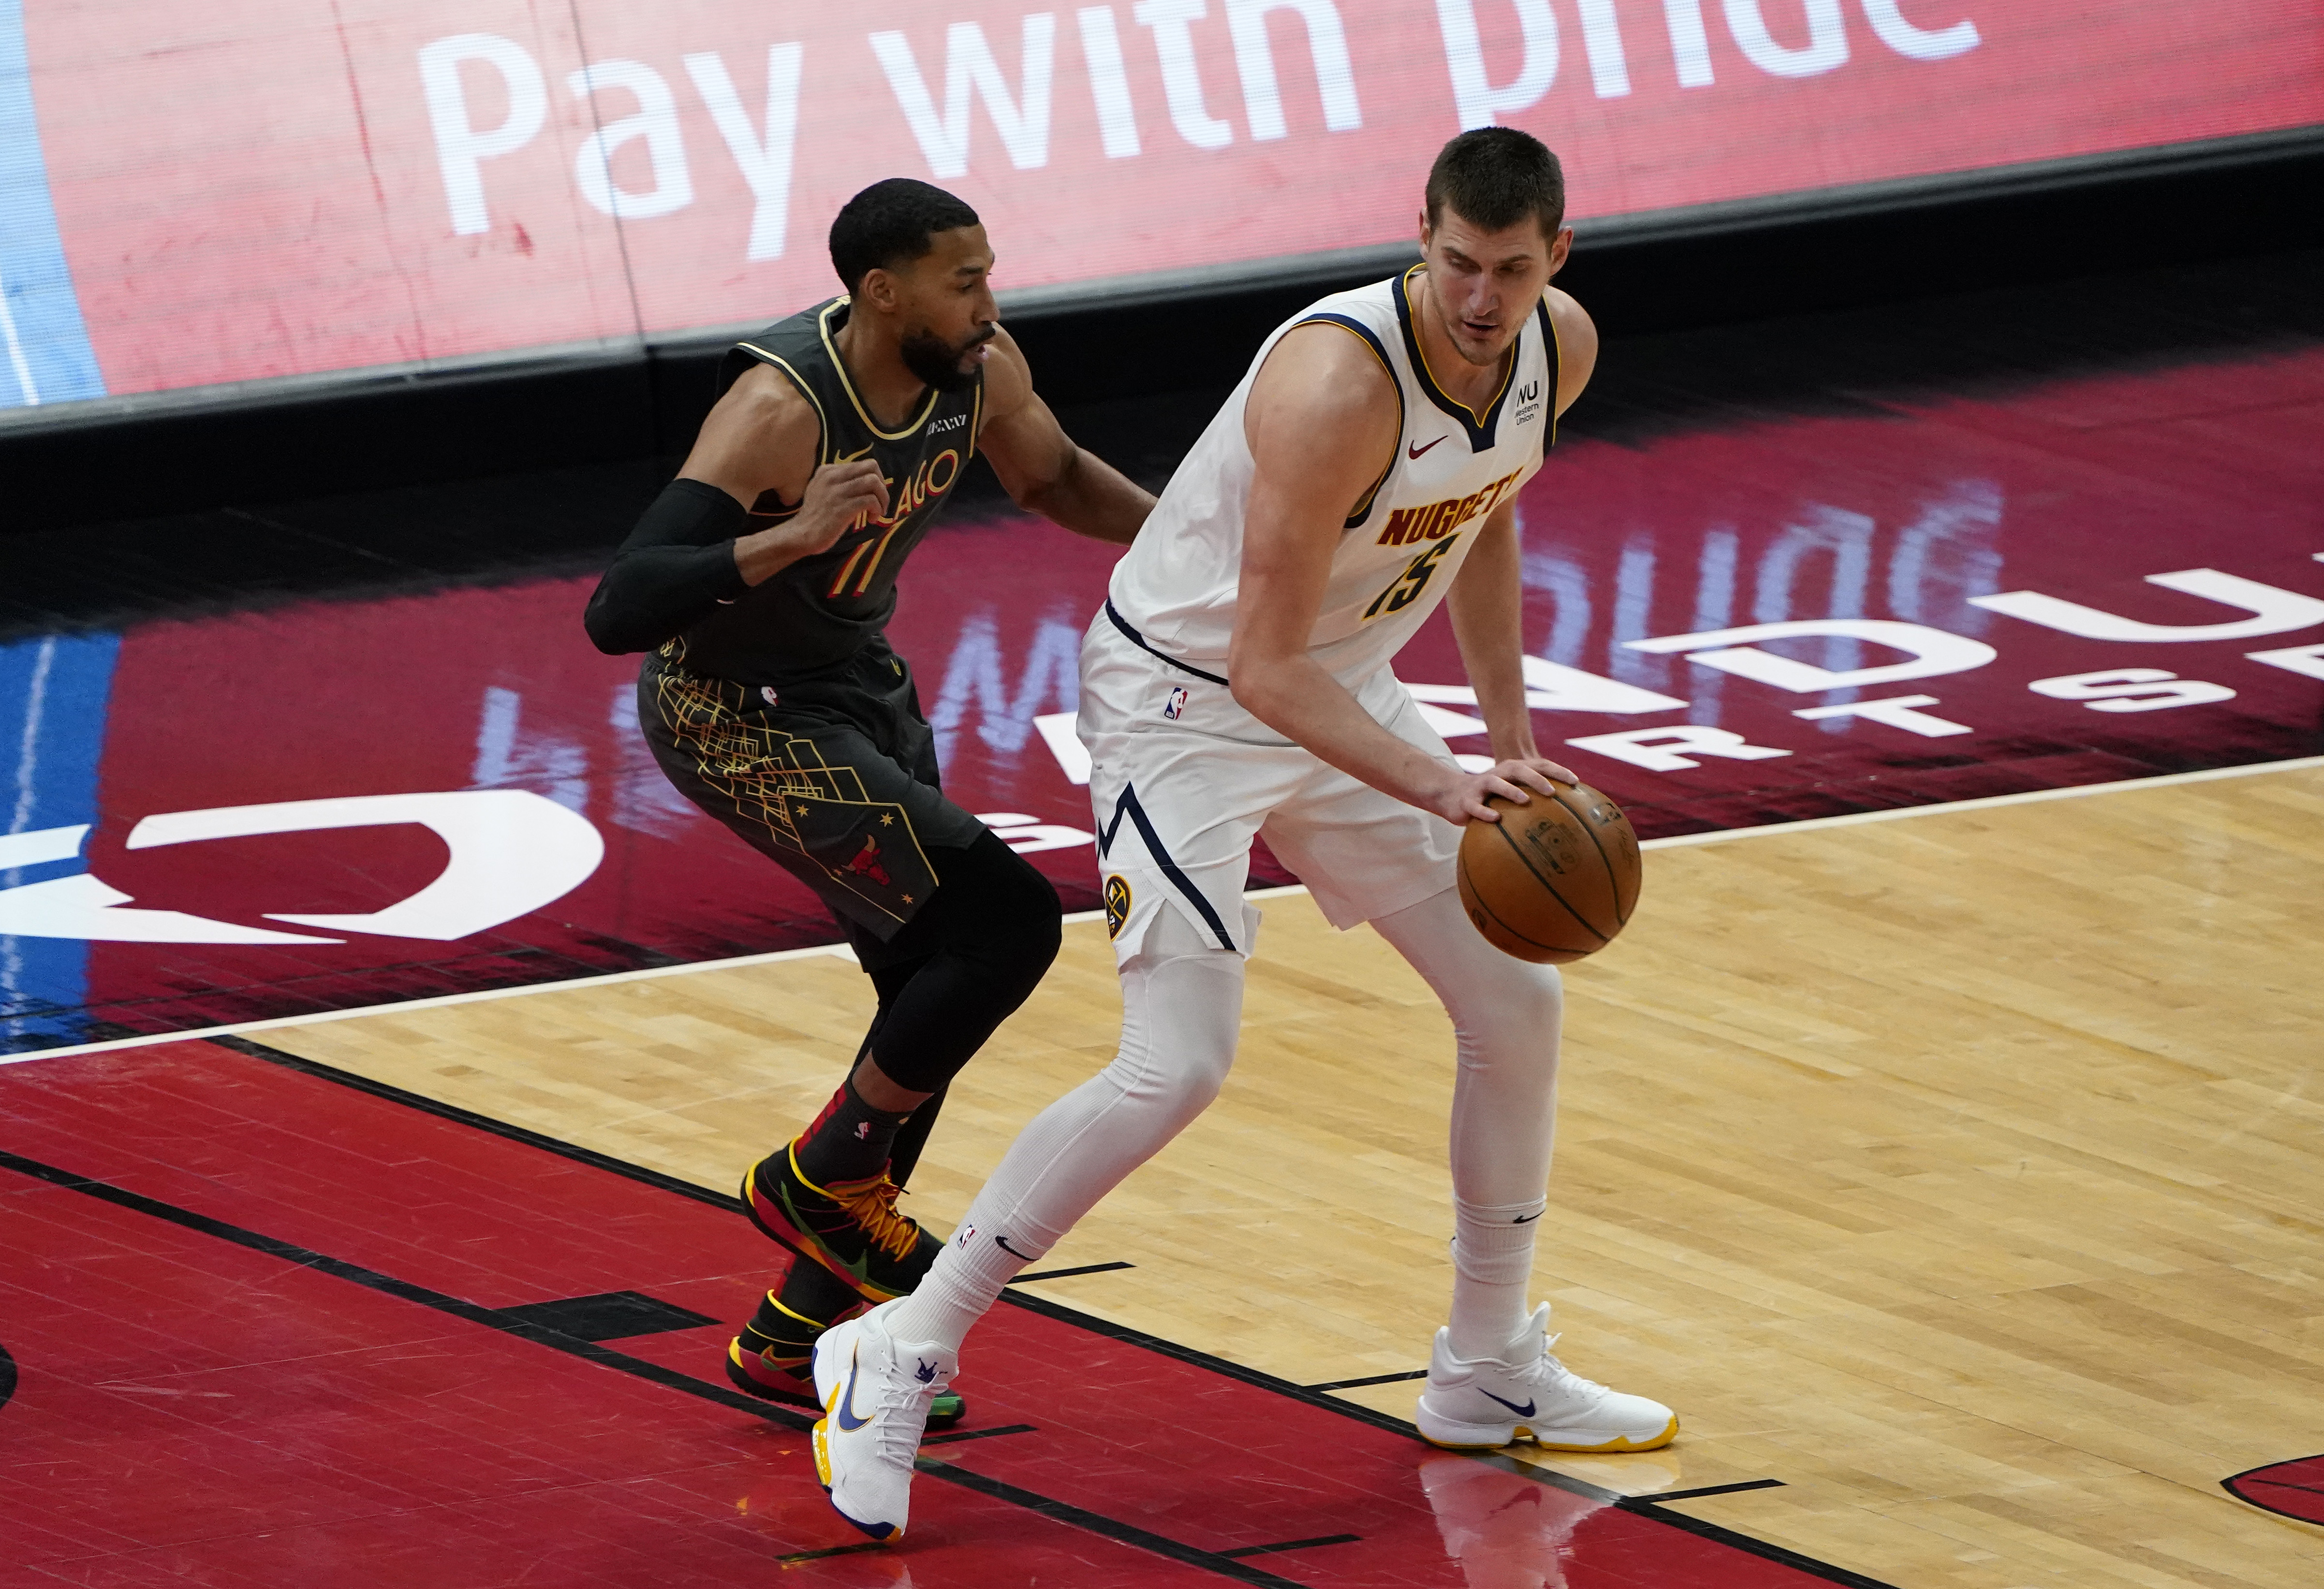 Mar 1, 2021; Chicago, Illinois, USA; Denver Nuggets center Nikola Jokic (15) dribbles the ball against Chicago Bulls guard Garrett Temple (17) during the first quarter at the United Center. Mandatory Credit: Mike Dinovo-USA TODAY Sports